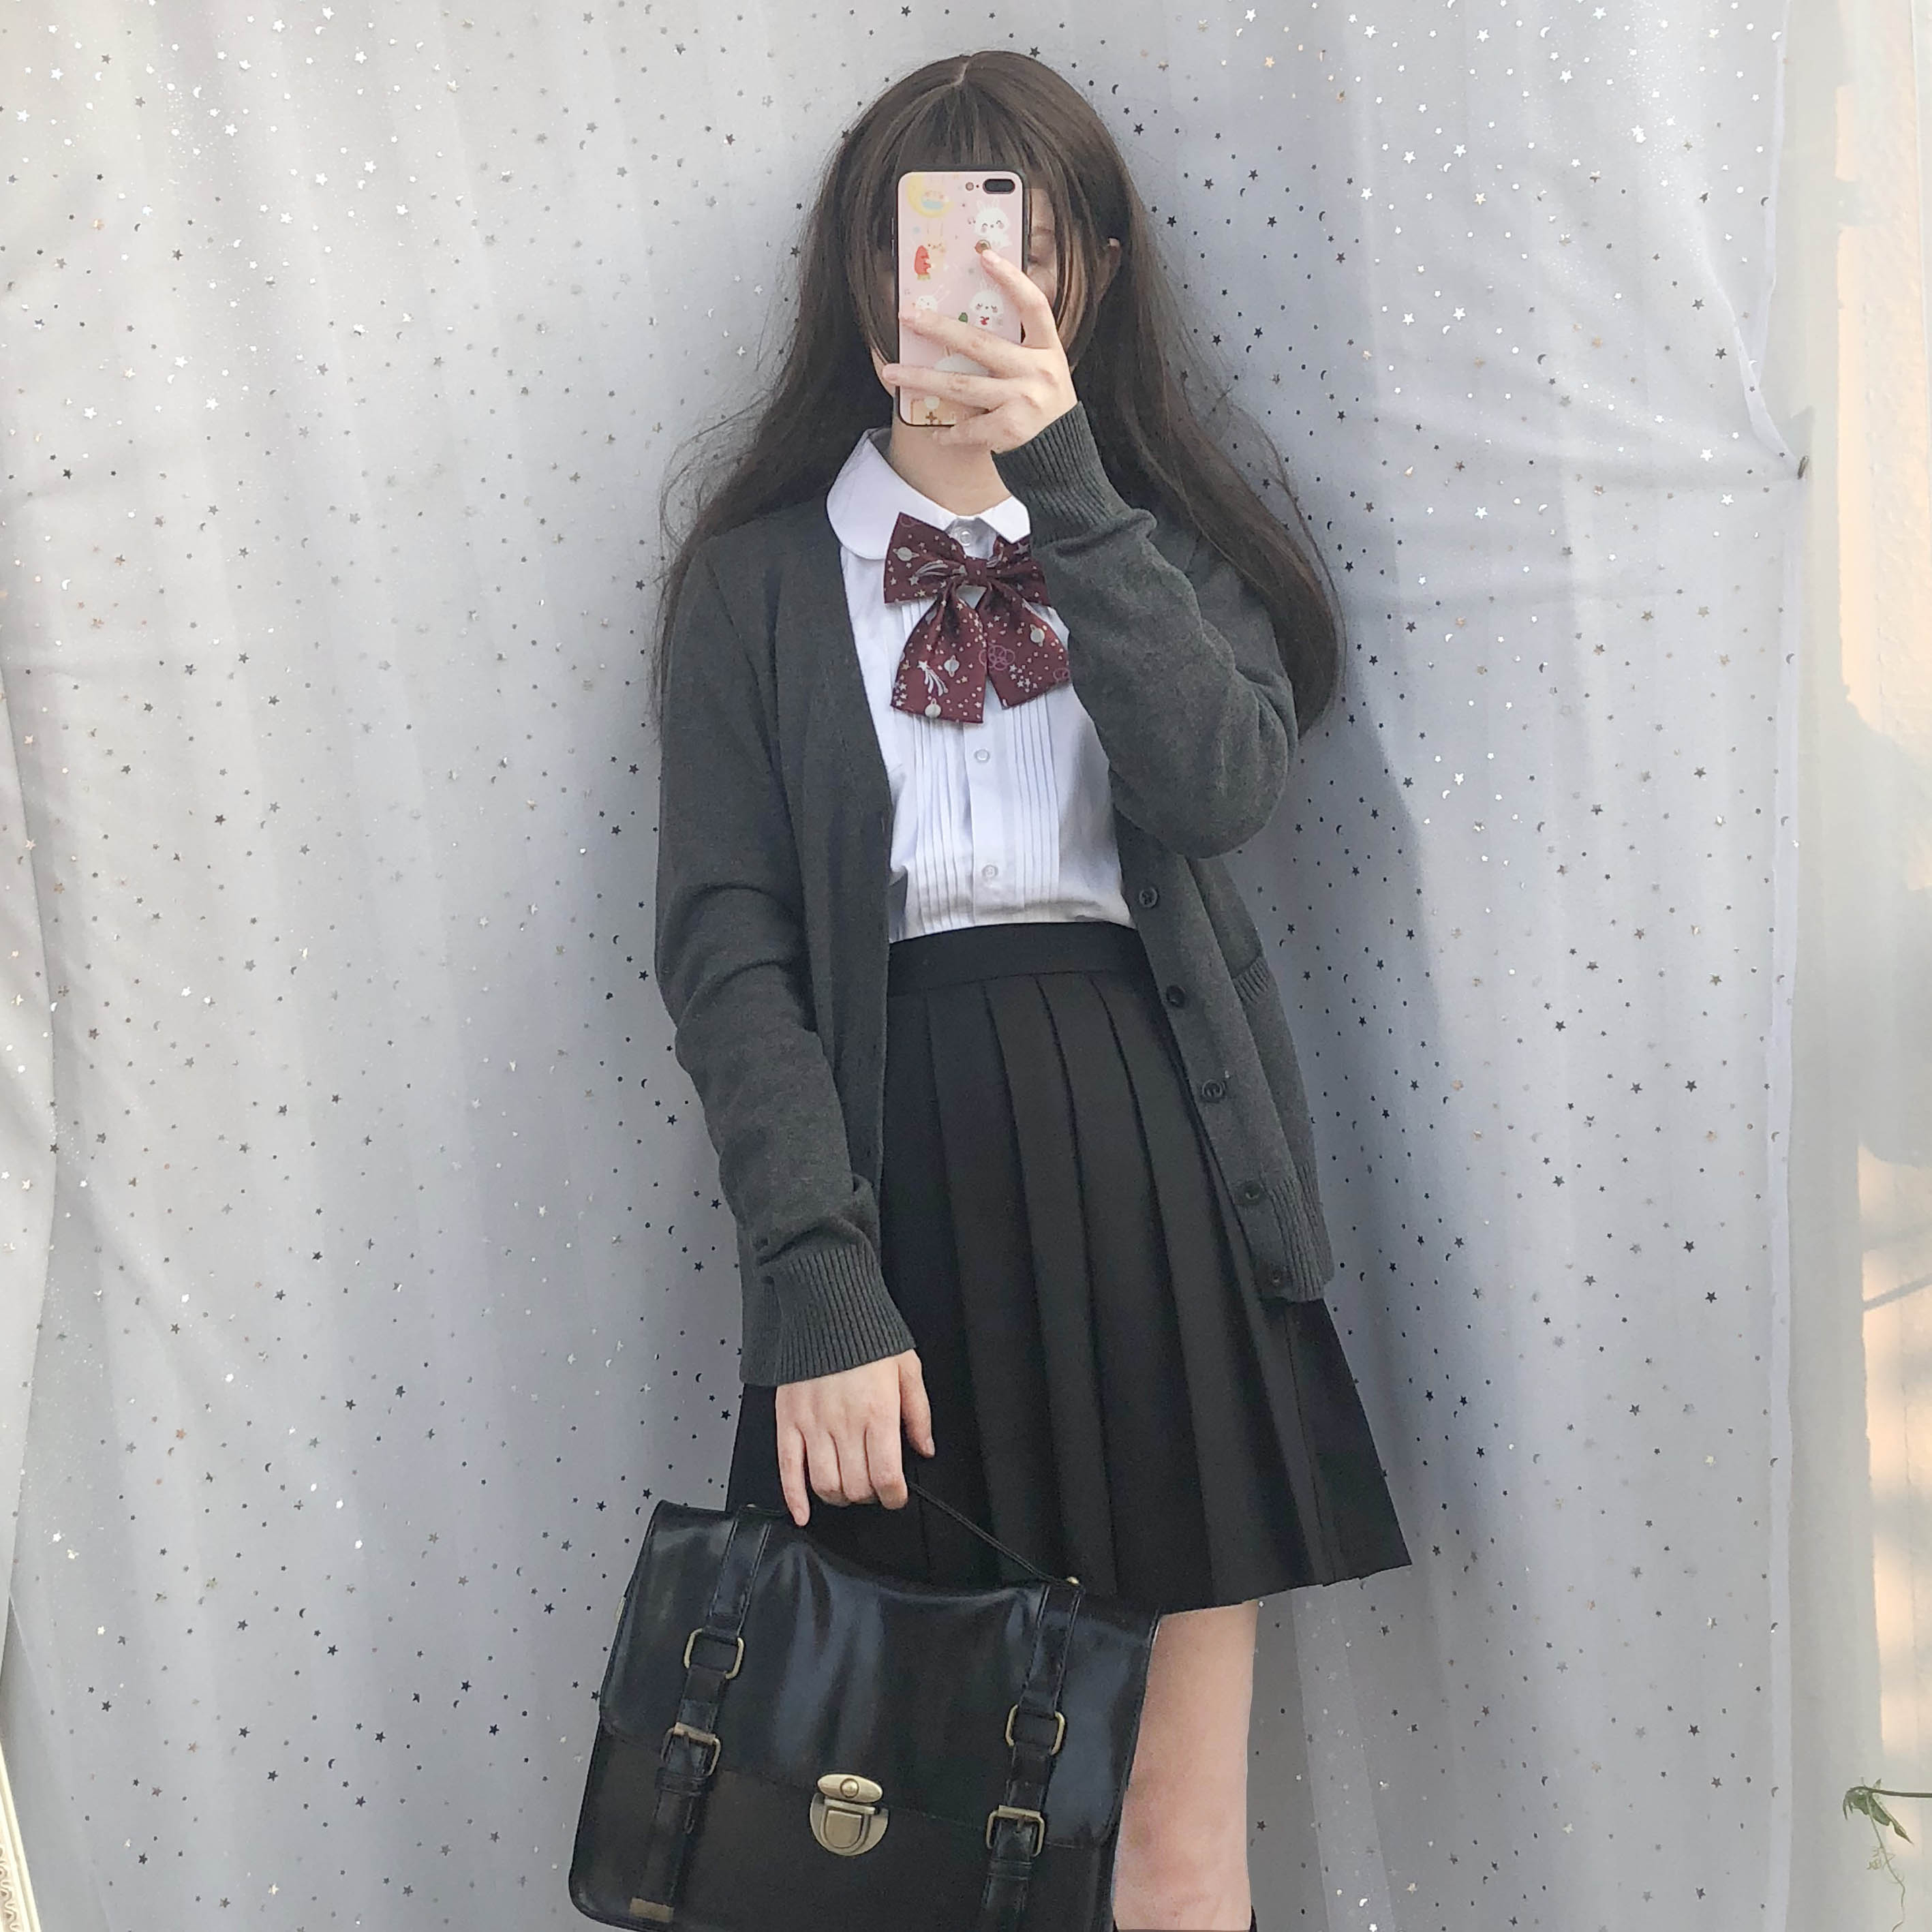 Japanese girl jk uniform long sleeved autumn and winter round neck shirt black pleated skirt knit sweater set three pieces set in School Uniforms from Novelty Special Use